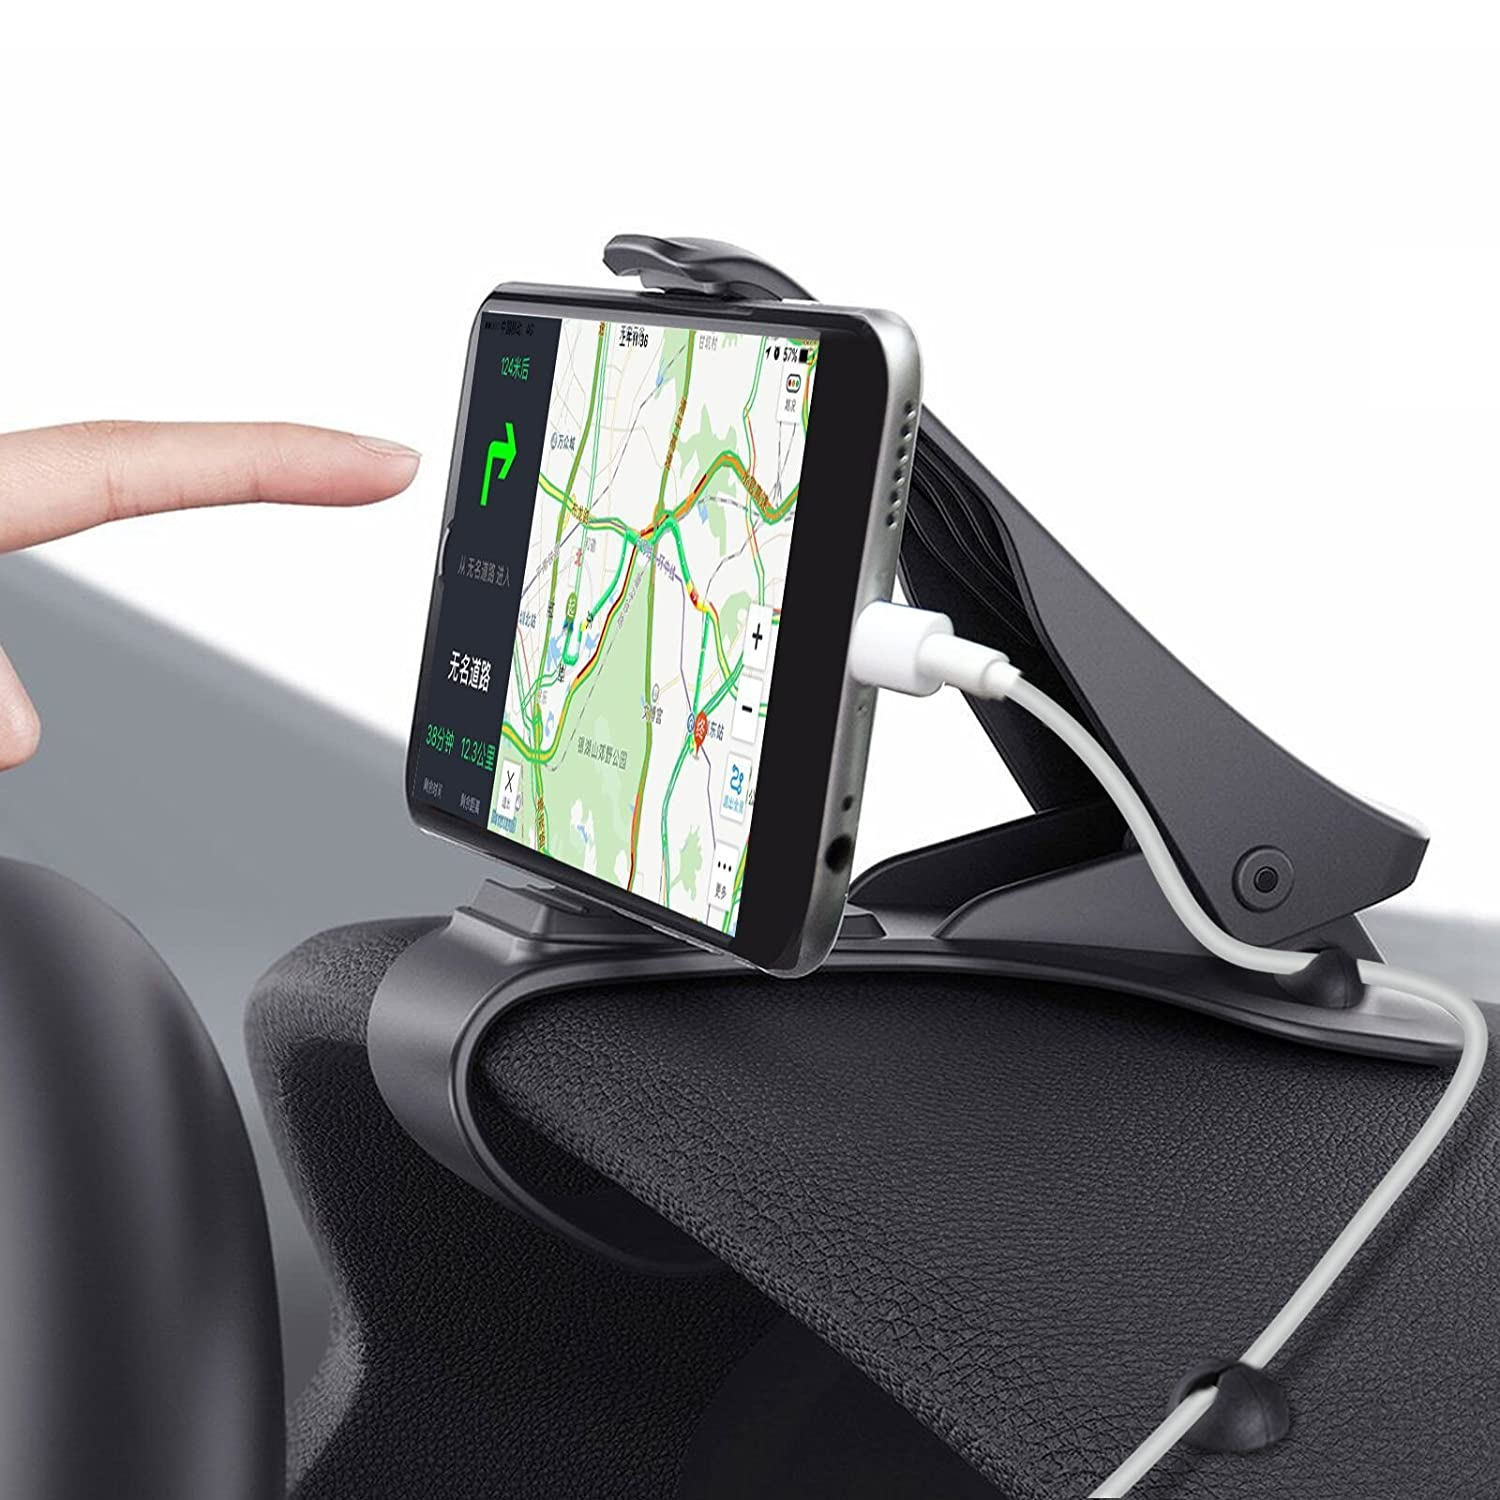 Car Phone Holder, MWAY Car Mount HUD Design with Cable Clips, No Blocking for Sight, Durable Dashboard Cell Phone Holder for iPhone X 8 7/7Plus/6/6S Plus/Samsung, HuaWei, 3.5-6.5 Inches Smartphones M.Way TT121